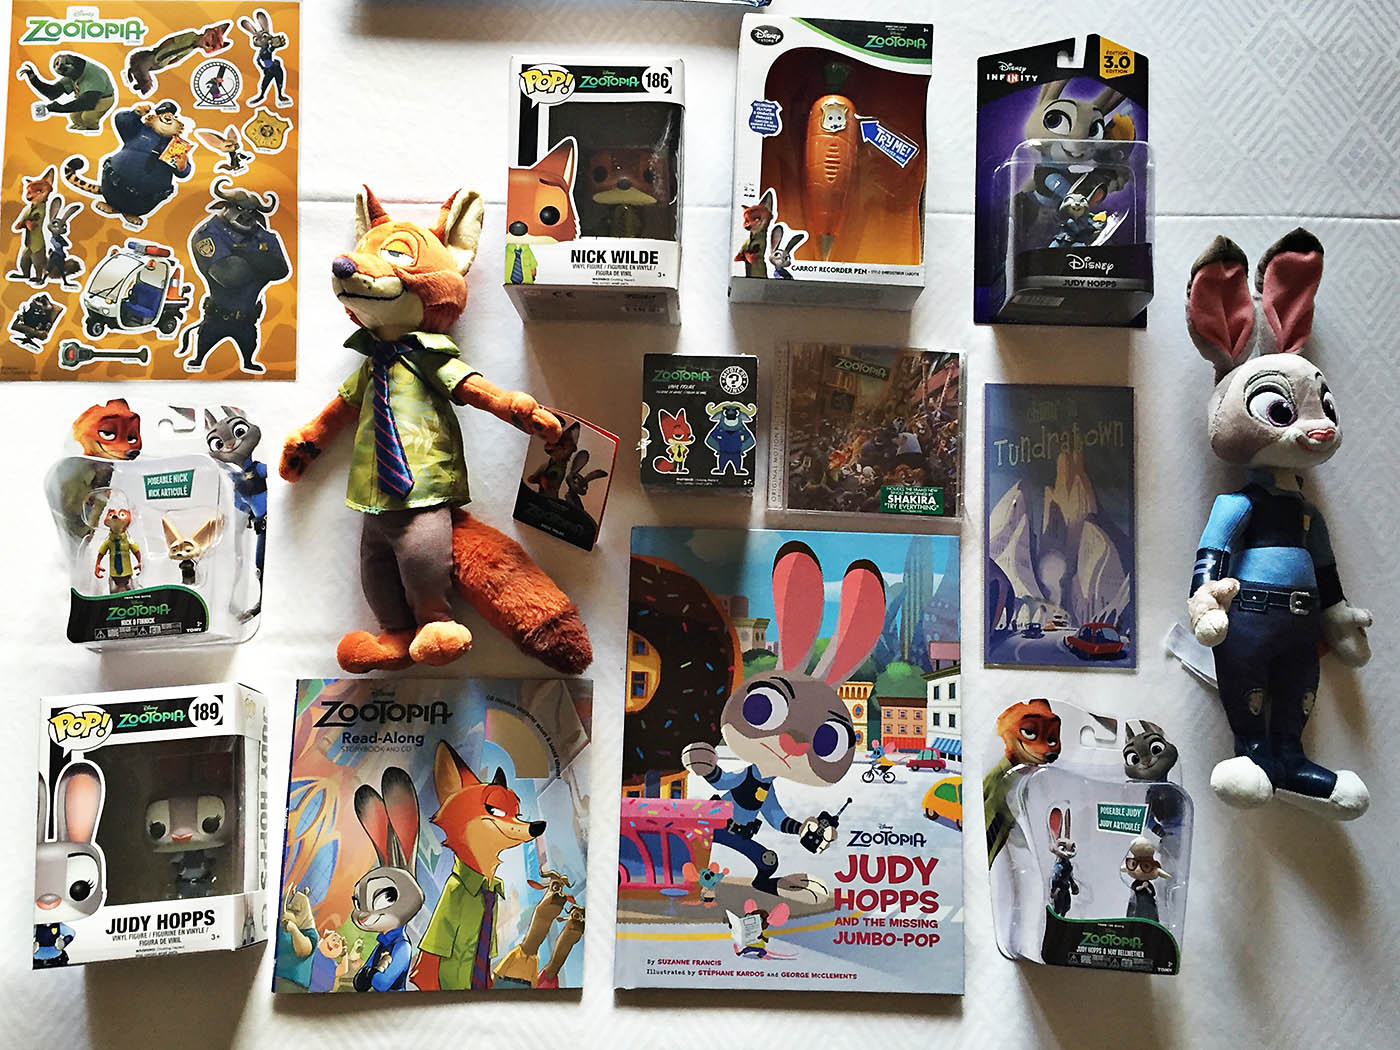 Zootopia products